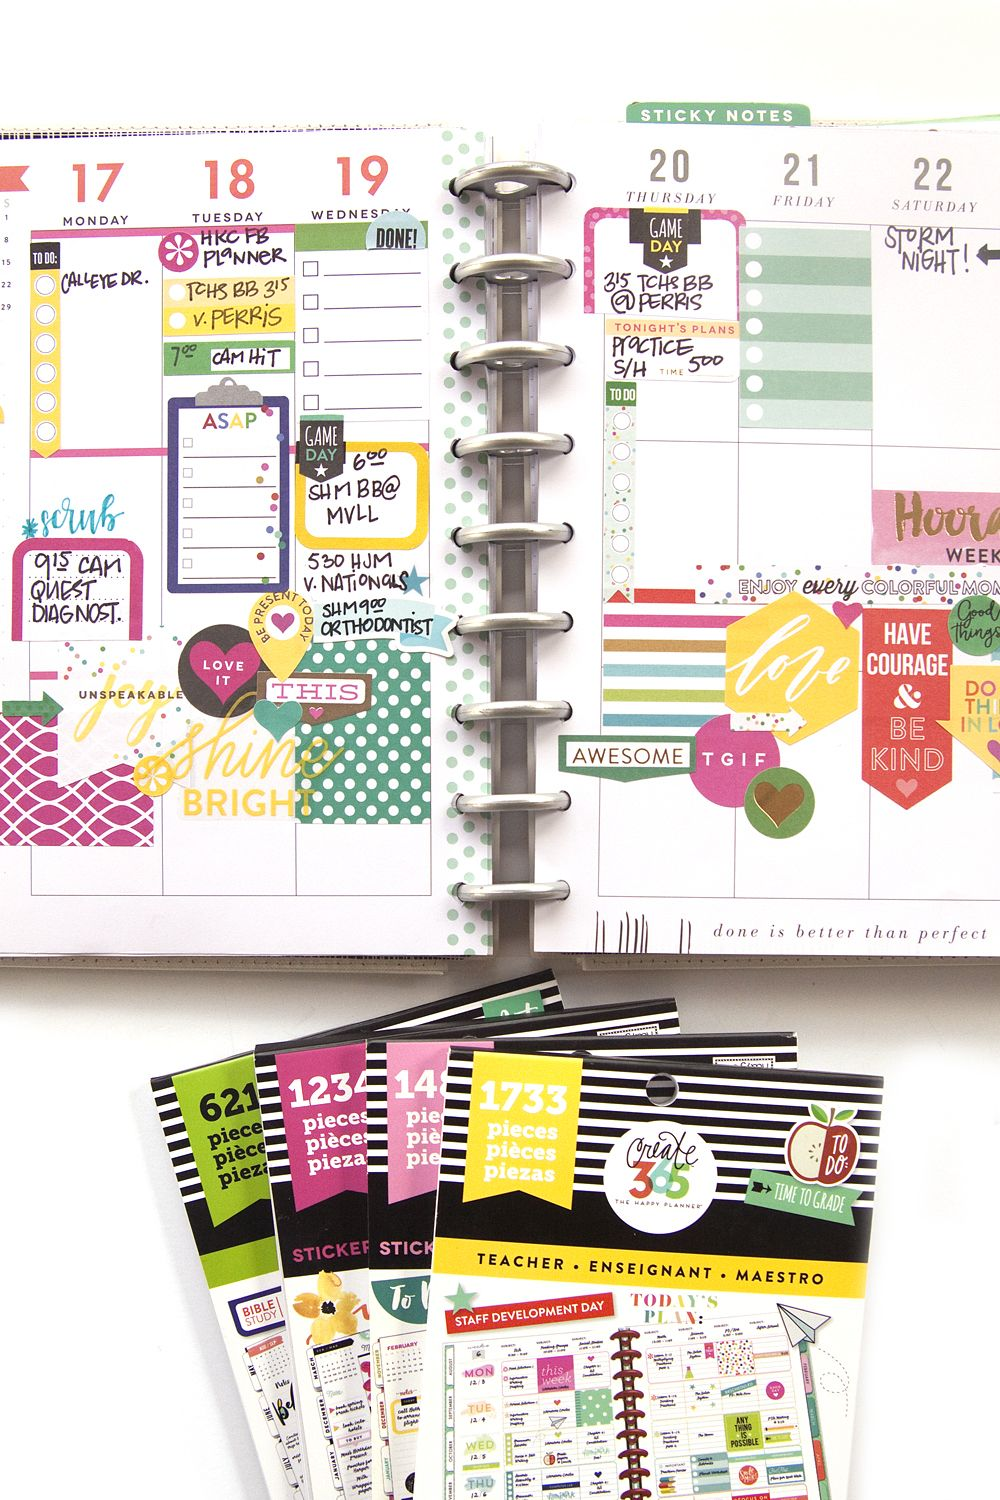 Layering A Cluster Of Stickers In The Happy Planner Sticker Activity Books My Big And Mighty Functional Frankenplanned Spread By Mambi Design Team Member Jennie Mcgarvey Me Ideas